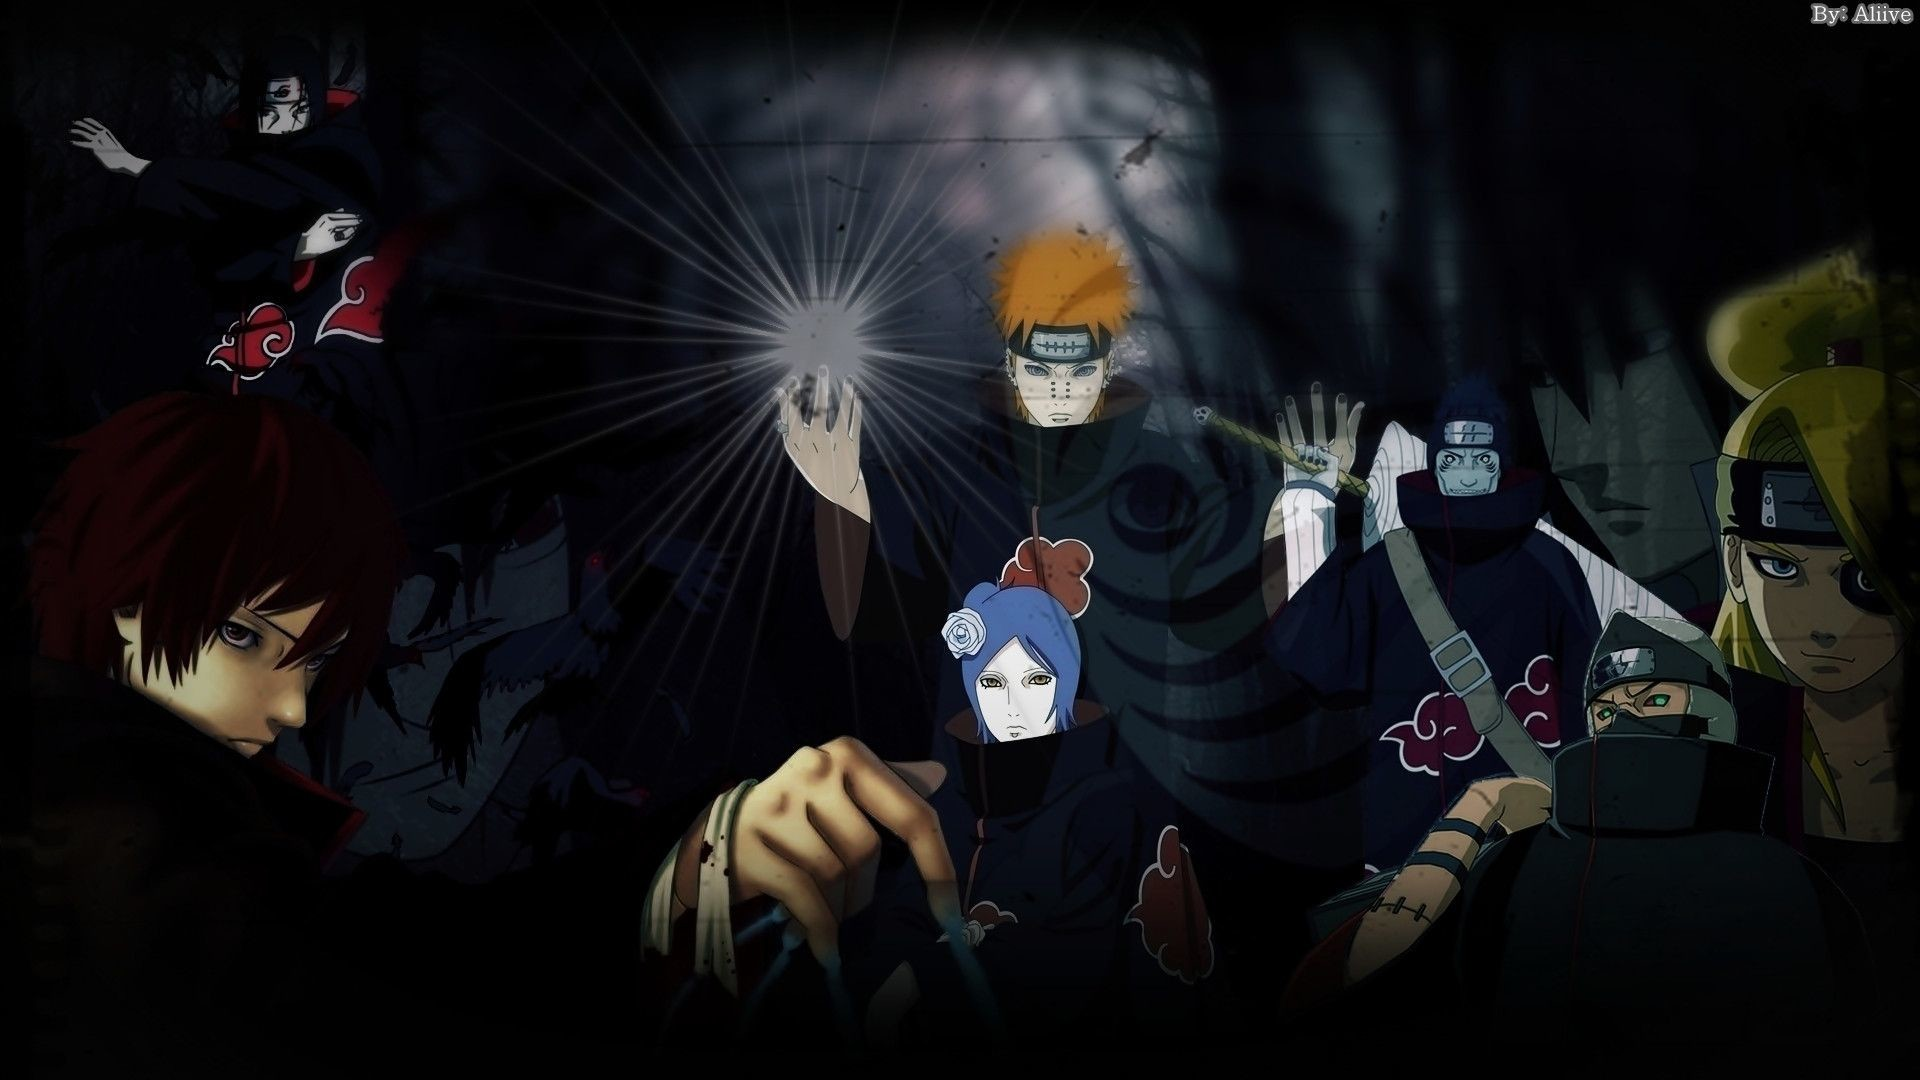 838183 naruto shippuden backgrounds 1920x1080 for iphone